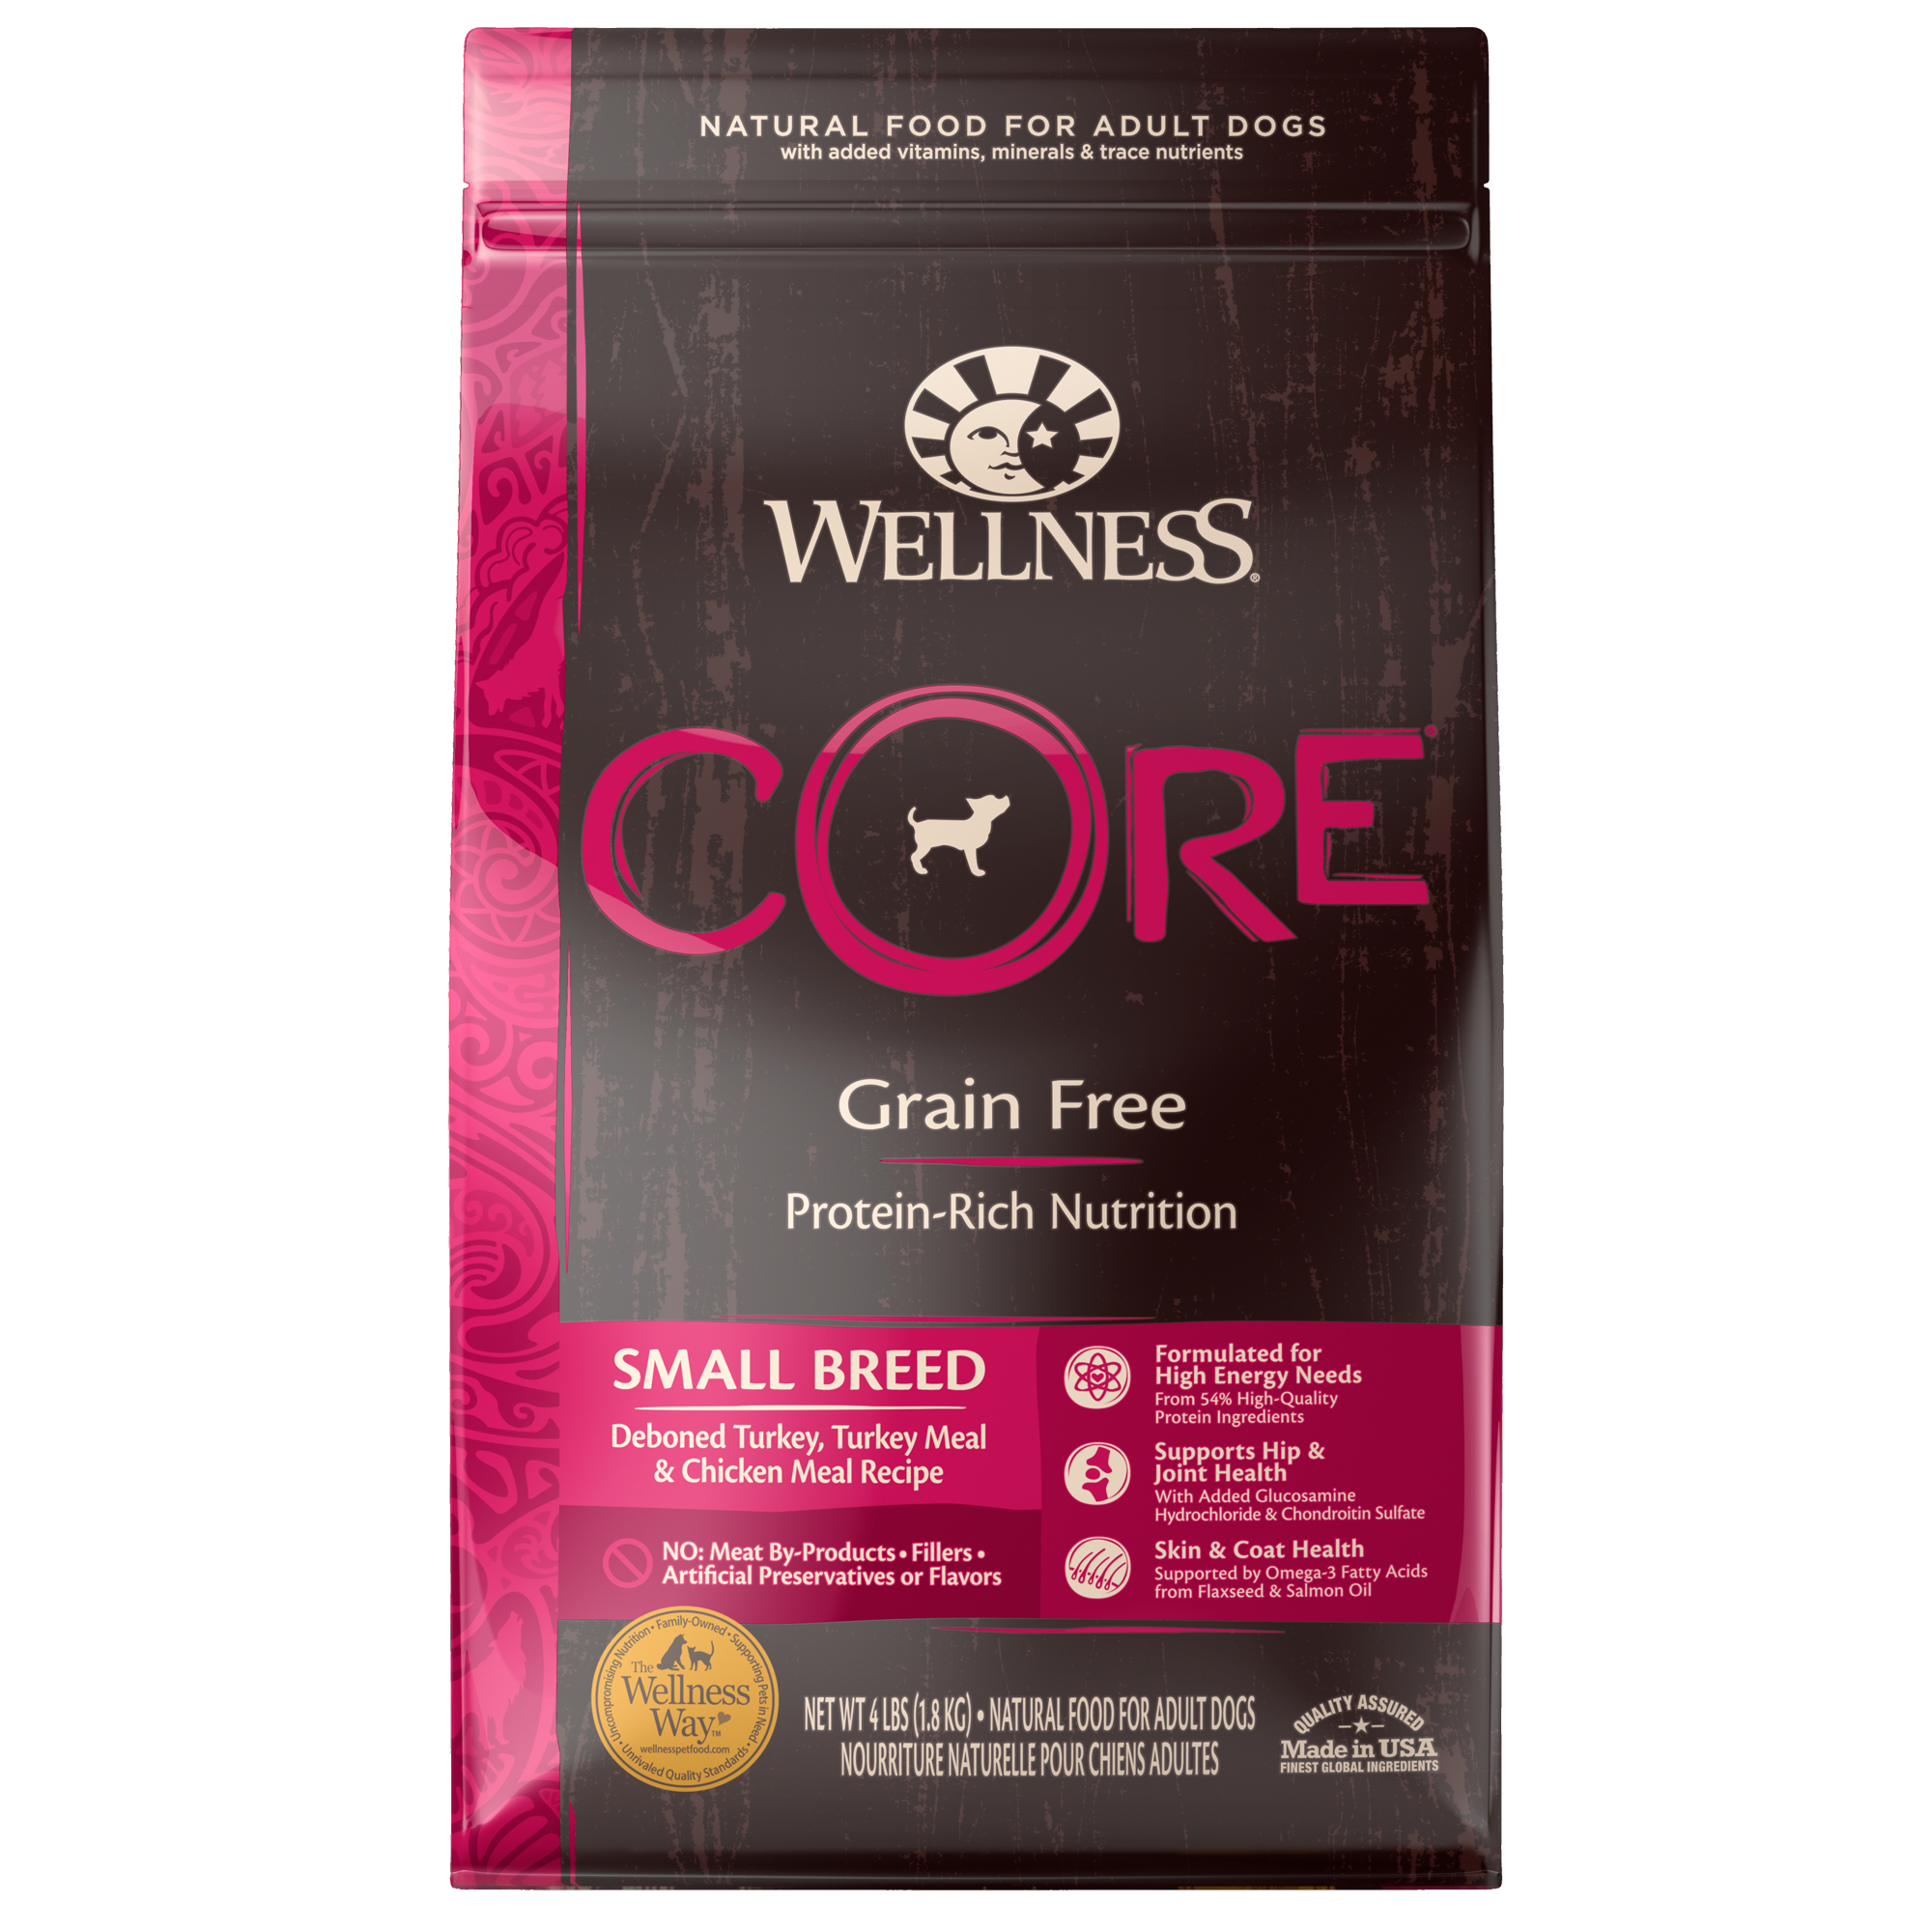 Wellness Grain Free Senior Dog Food